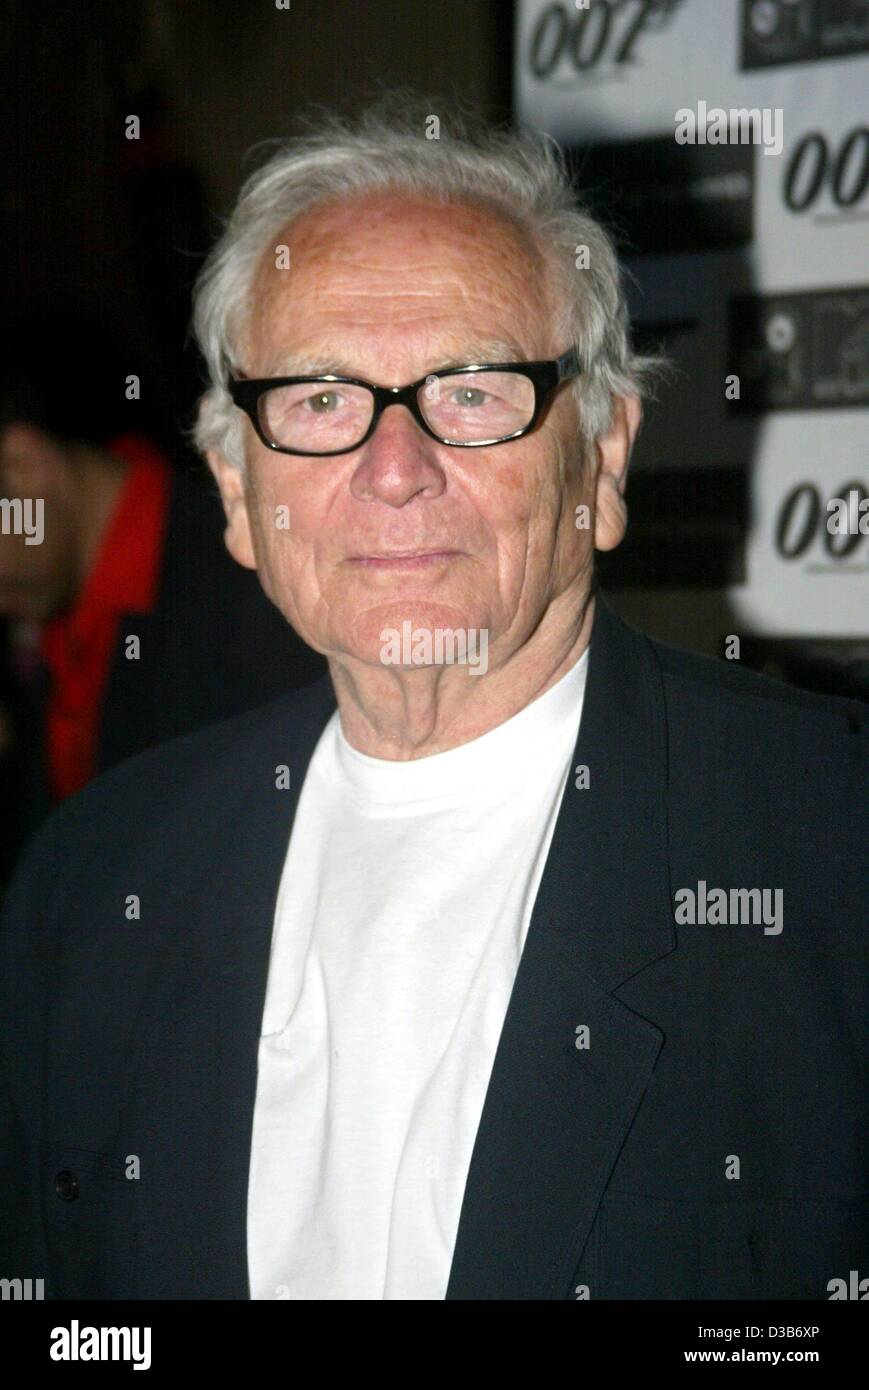 (dpa) - French fashion designer Pierre Cardin, pictured in Cannes, France, 18 May 2002. A judge in the town of Grasse, - Stock Image